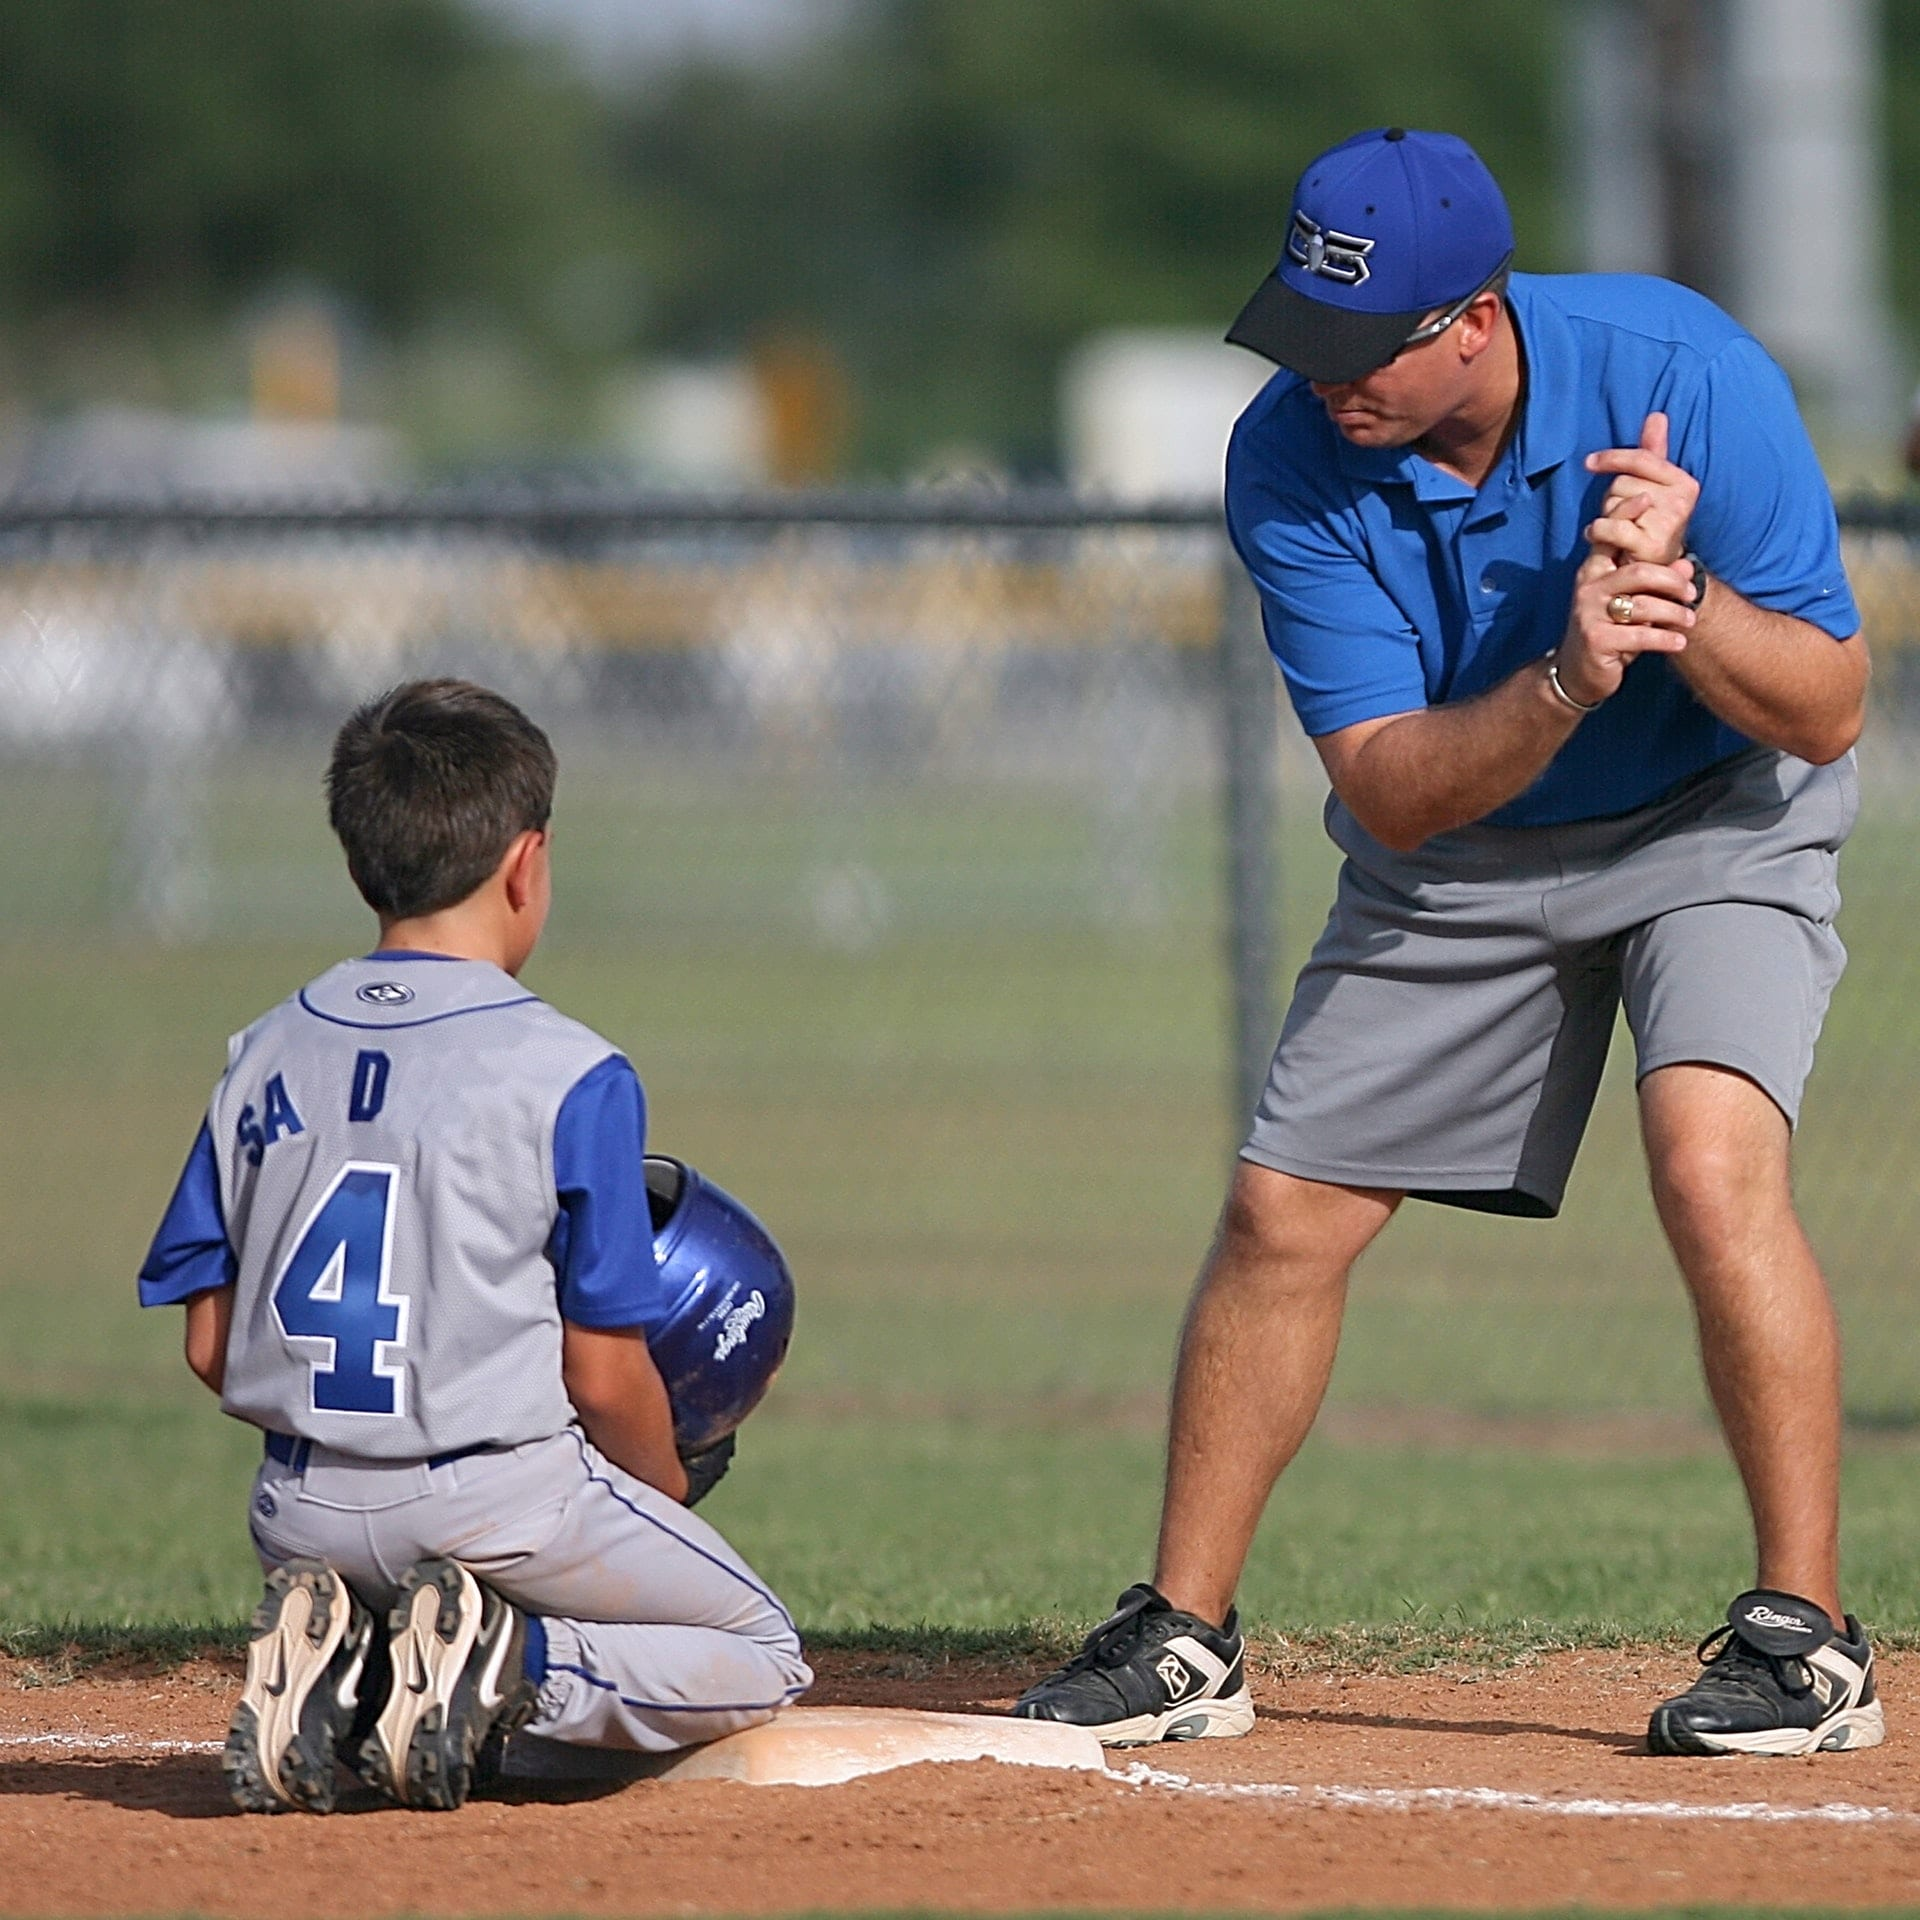 365 Days to Better Baseball - Coaching Tip of the Day